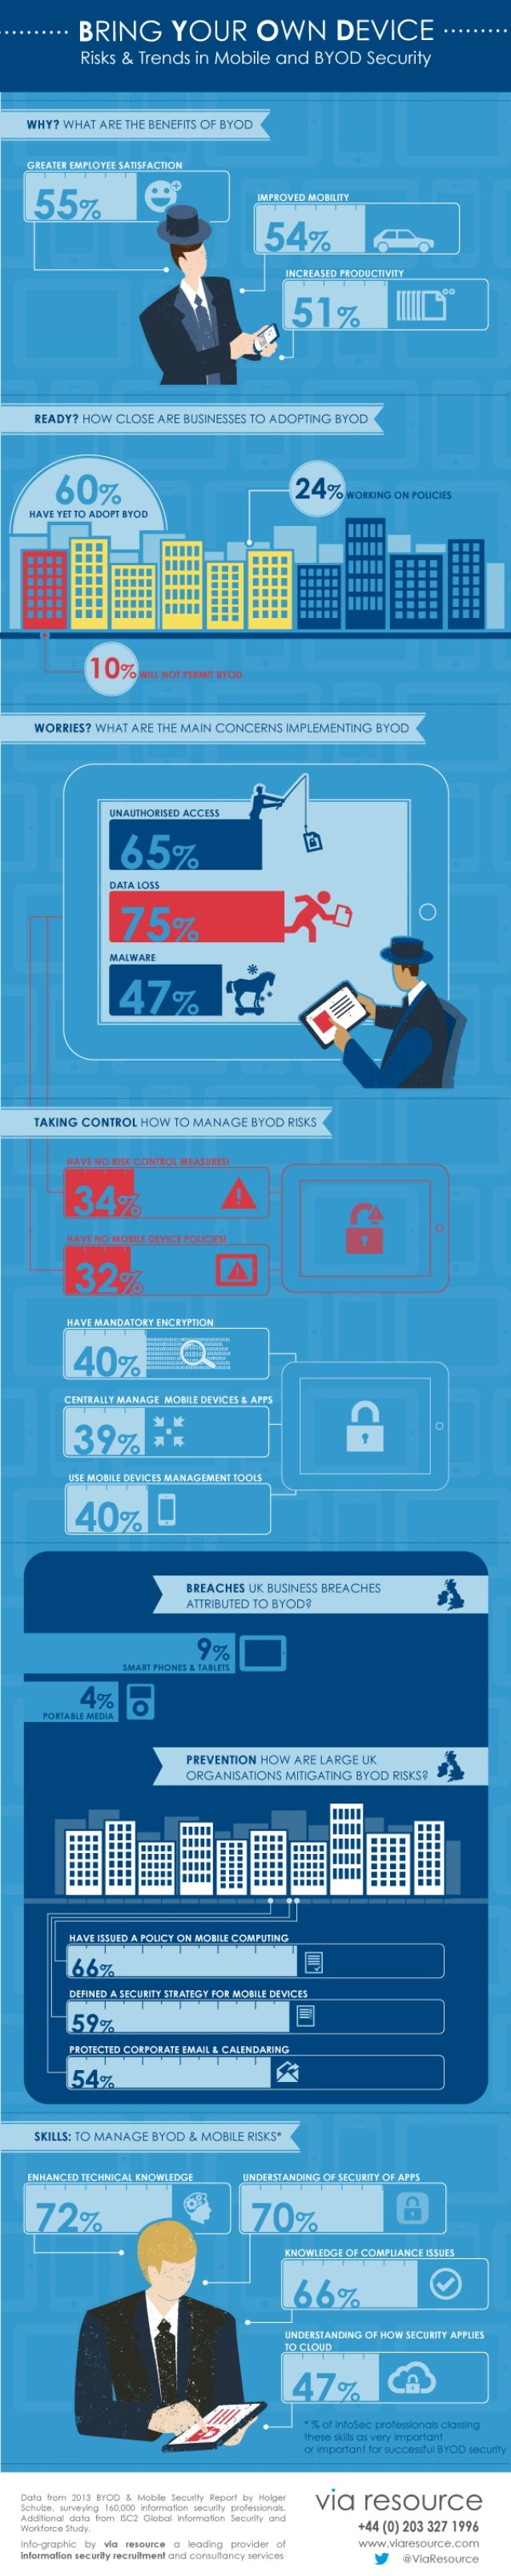 Infographic: Byod - Risks, Trends & Skills For Byod Security